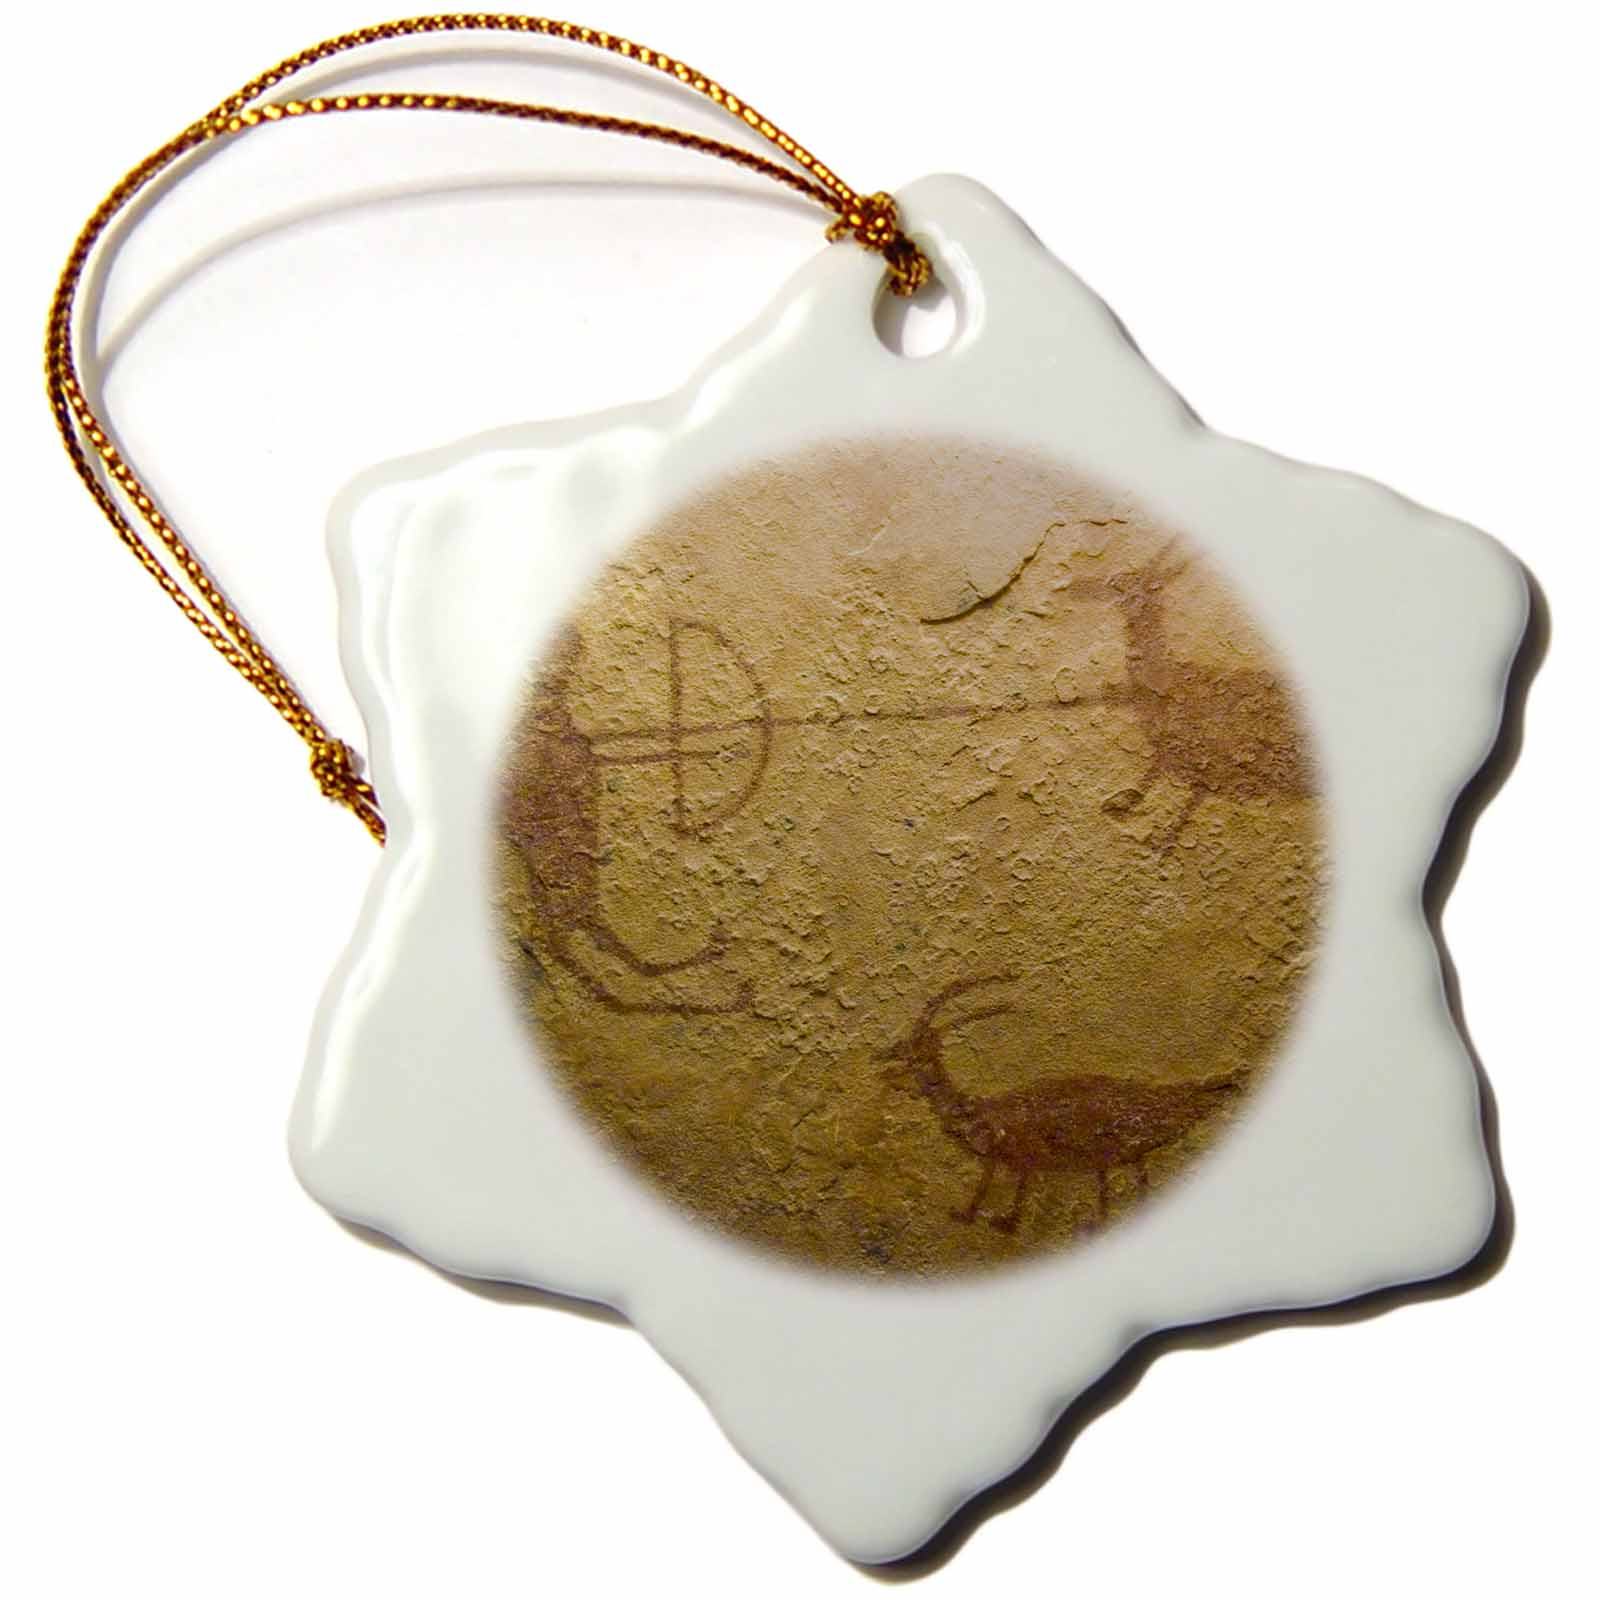 3dRose Pictograph, Canyon deChelly NP, Native American - US32 AWY0005 - Angel Wynn - Snowflake Ornament, 3-inch